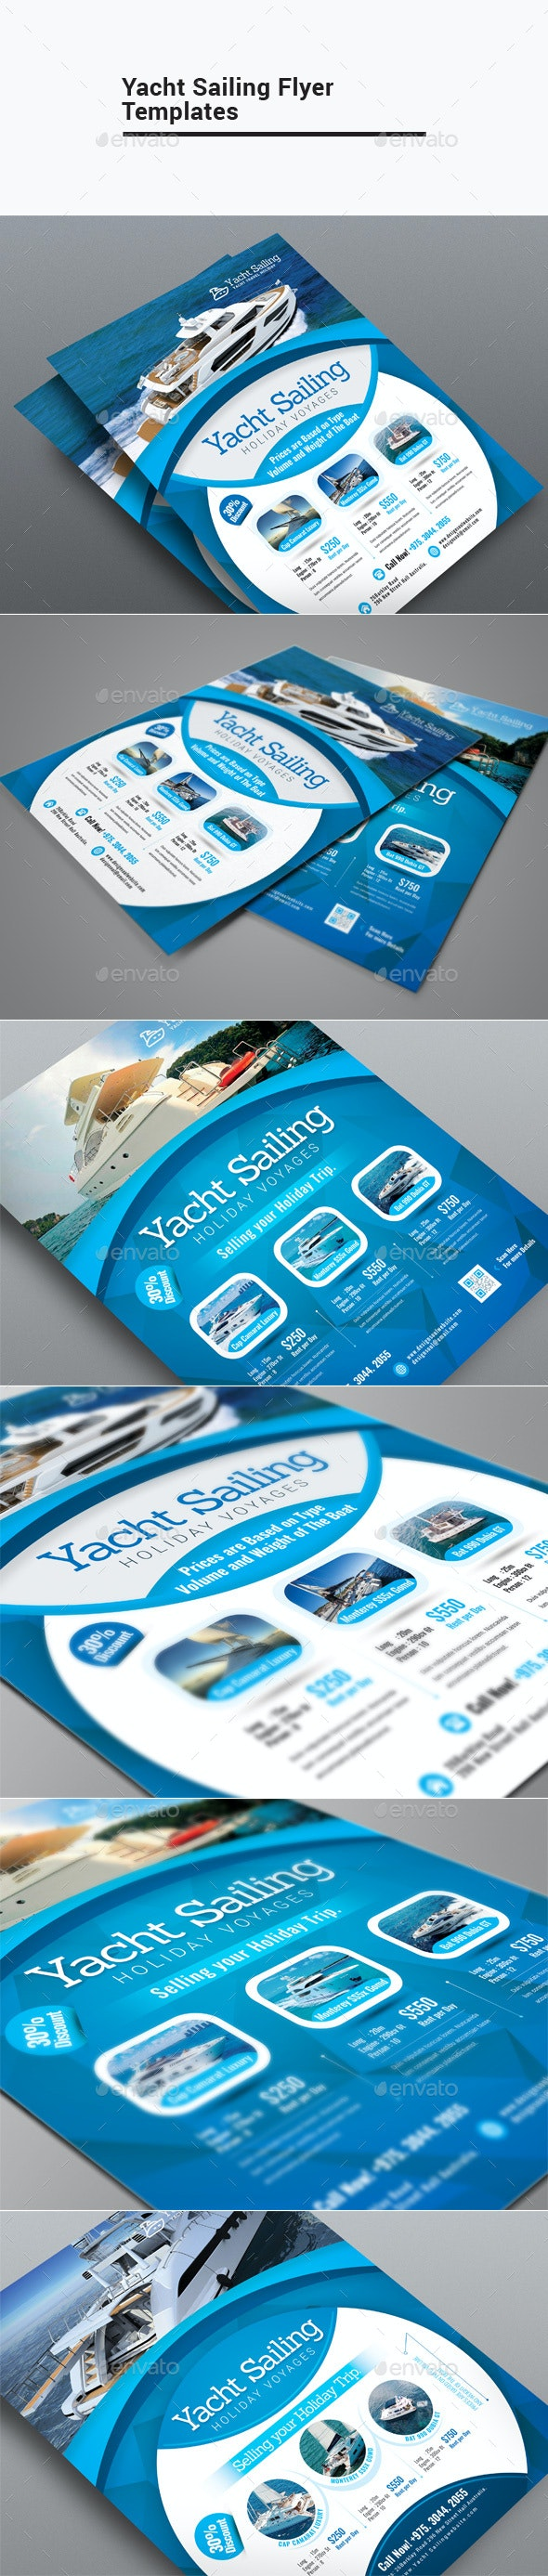 Yacht Sailing Flyer Templates - Corporate Flyers